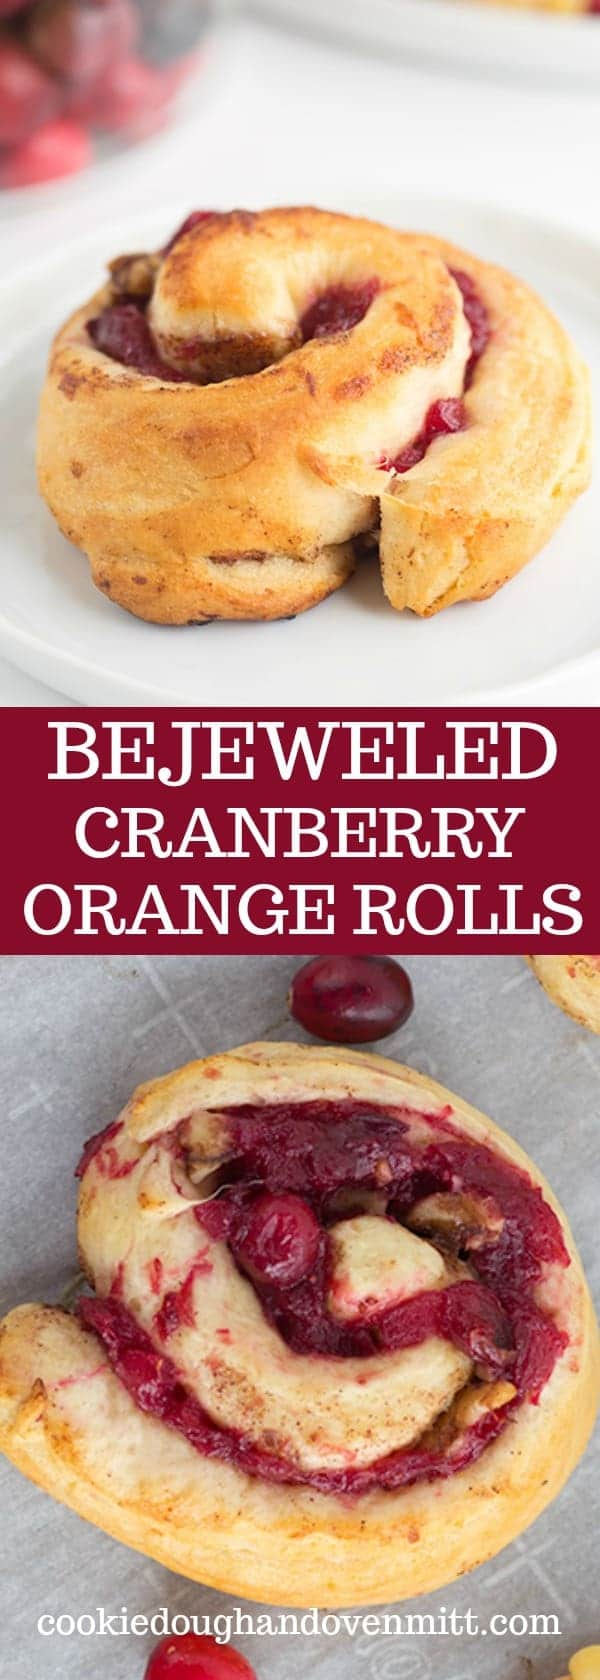 Bejeweled Cranberry Orange Rolls - This recipe is the perfect way to doctor up store-bought cinnamon rolls. Orange cinnamon rolls with a fun cranberry pineapple twist! They're pretty and taste AMAZING!